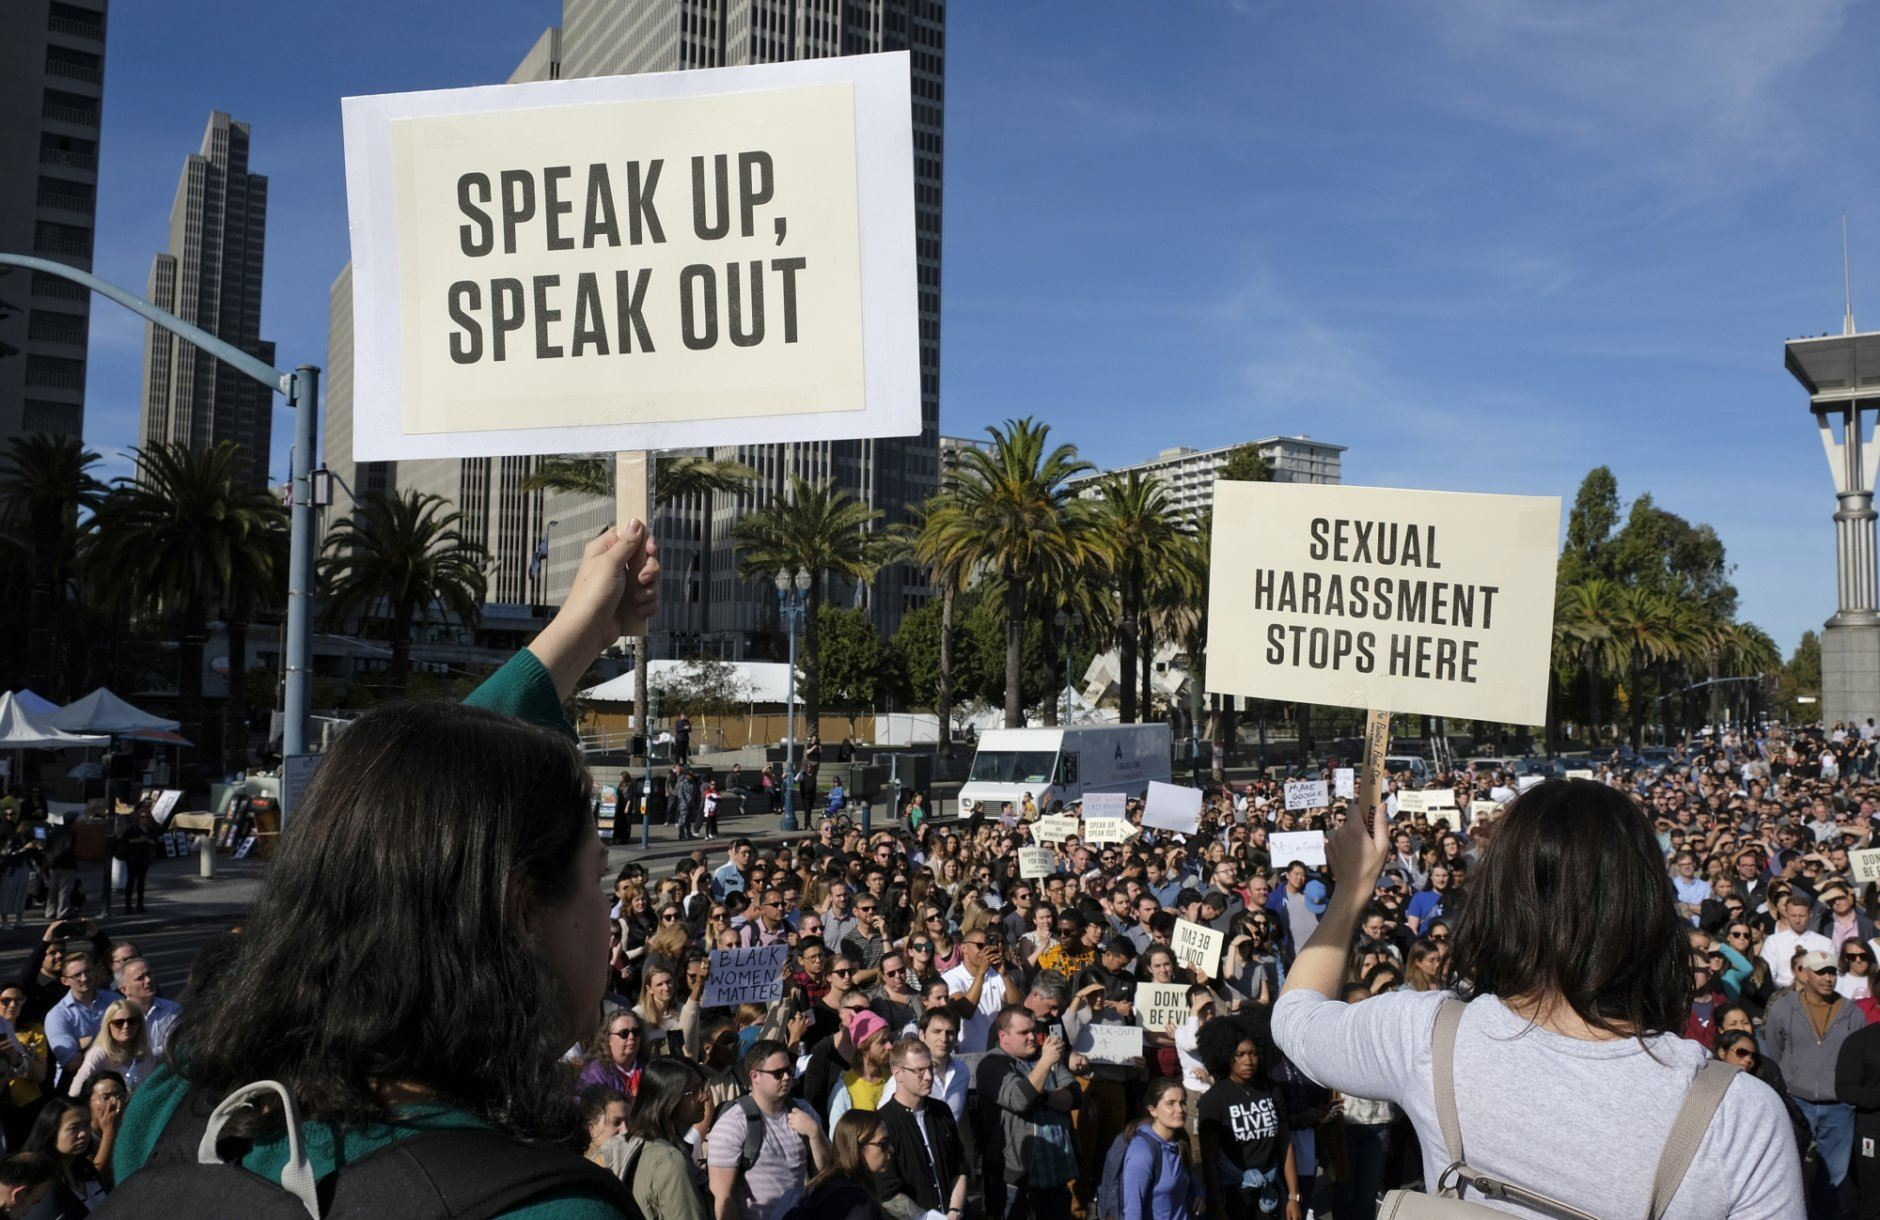 FILE - In this Nov. 1, 2018, file photo, Google employees hold up signs during a walkout rally at Harry Bridges Plaza in San Francisco to protest against what they said is the tech company's mishandling of sexual misconduct allegations against executives. Employees at Google, Amazon, Microsoft and elsewhere are increasingly speaking out about military warfare, immigration and the environment, and questioning the effects of their work. Experts say it's an unprecedented trend of activism in Big Tech. (AP Photo/Eric Risberg, File)